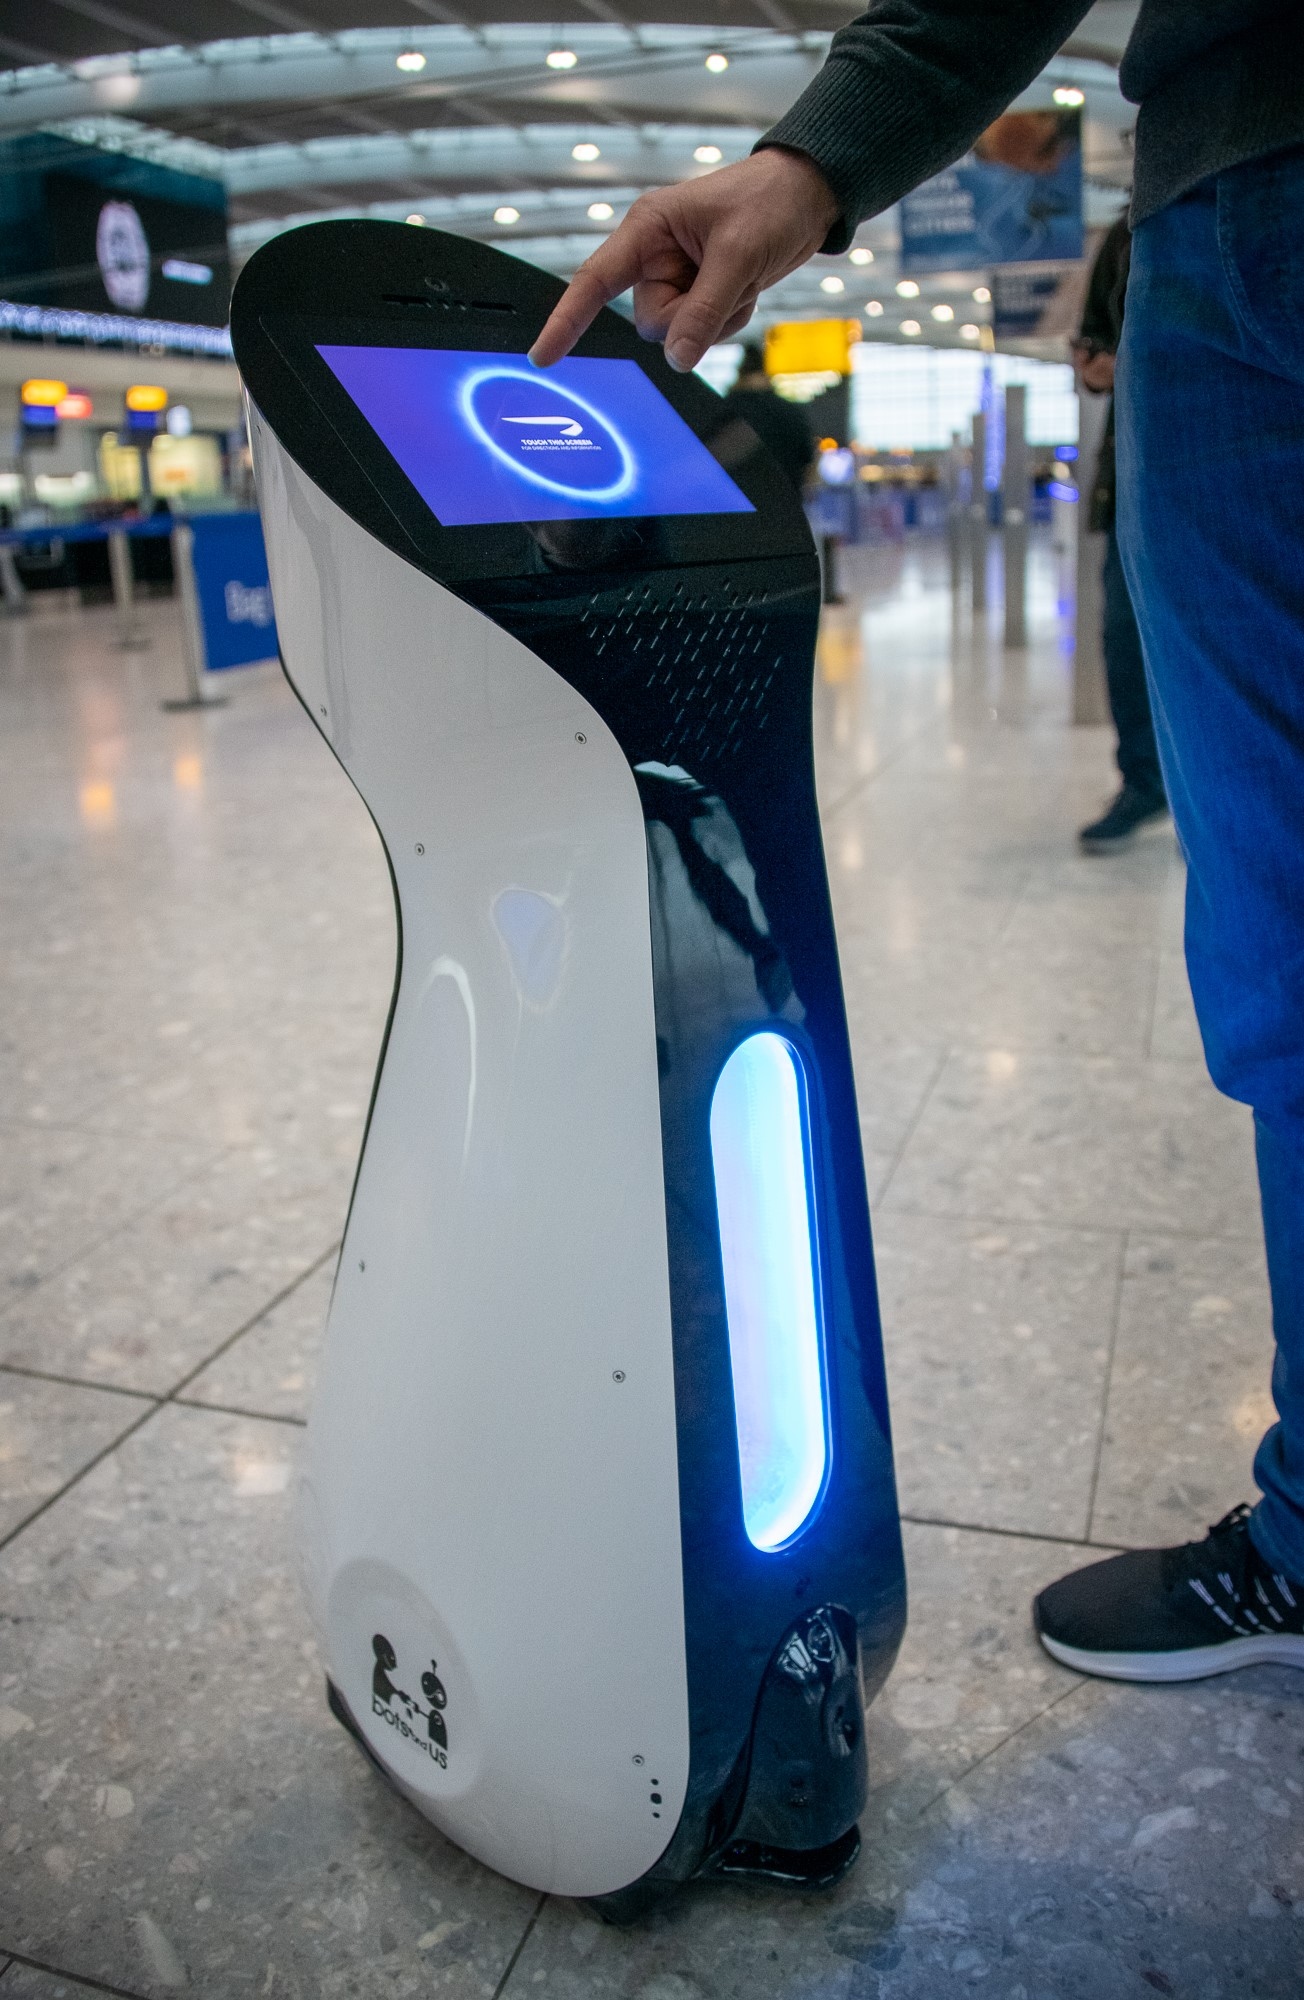 The robots will escort passengers to various locations in Terminal 5 (British Airways/PA)